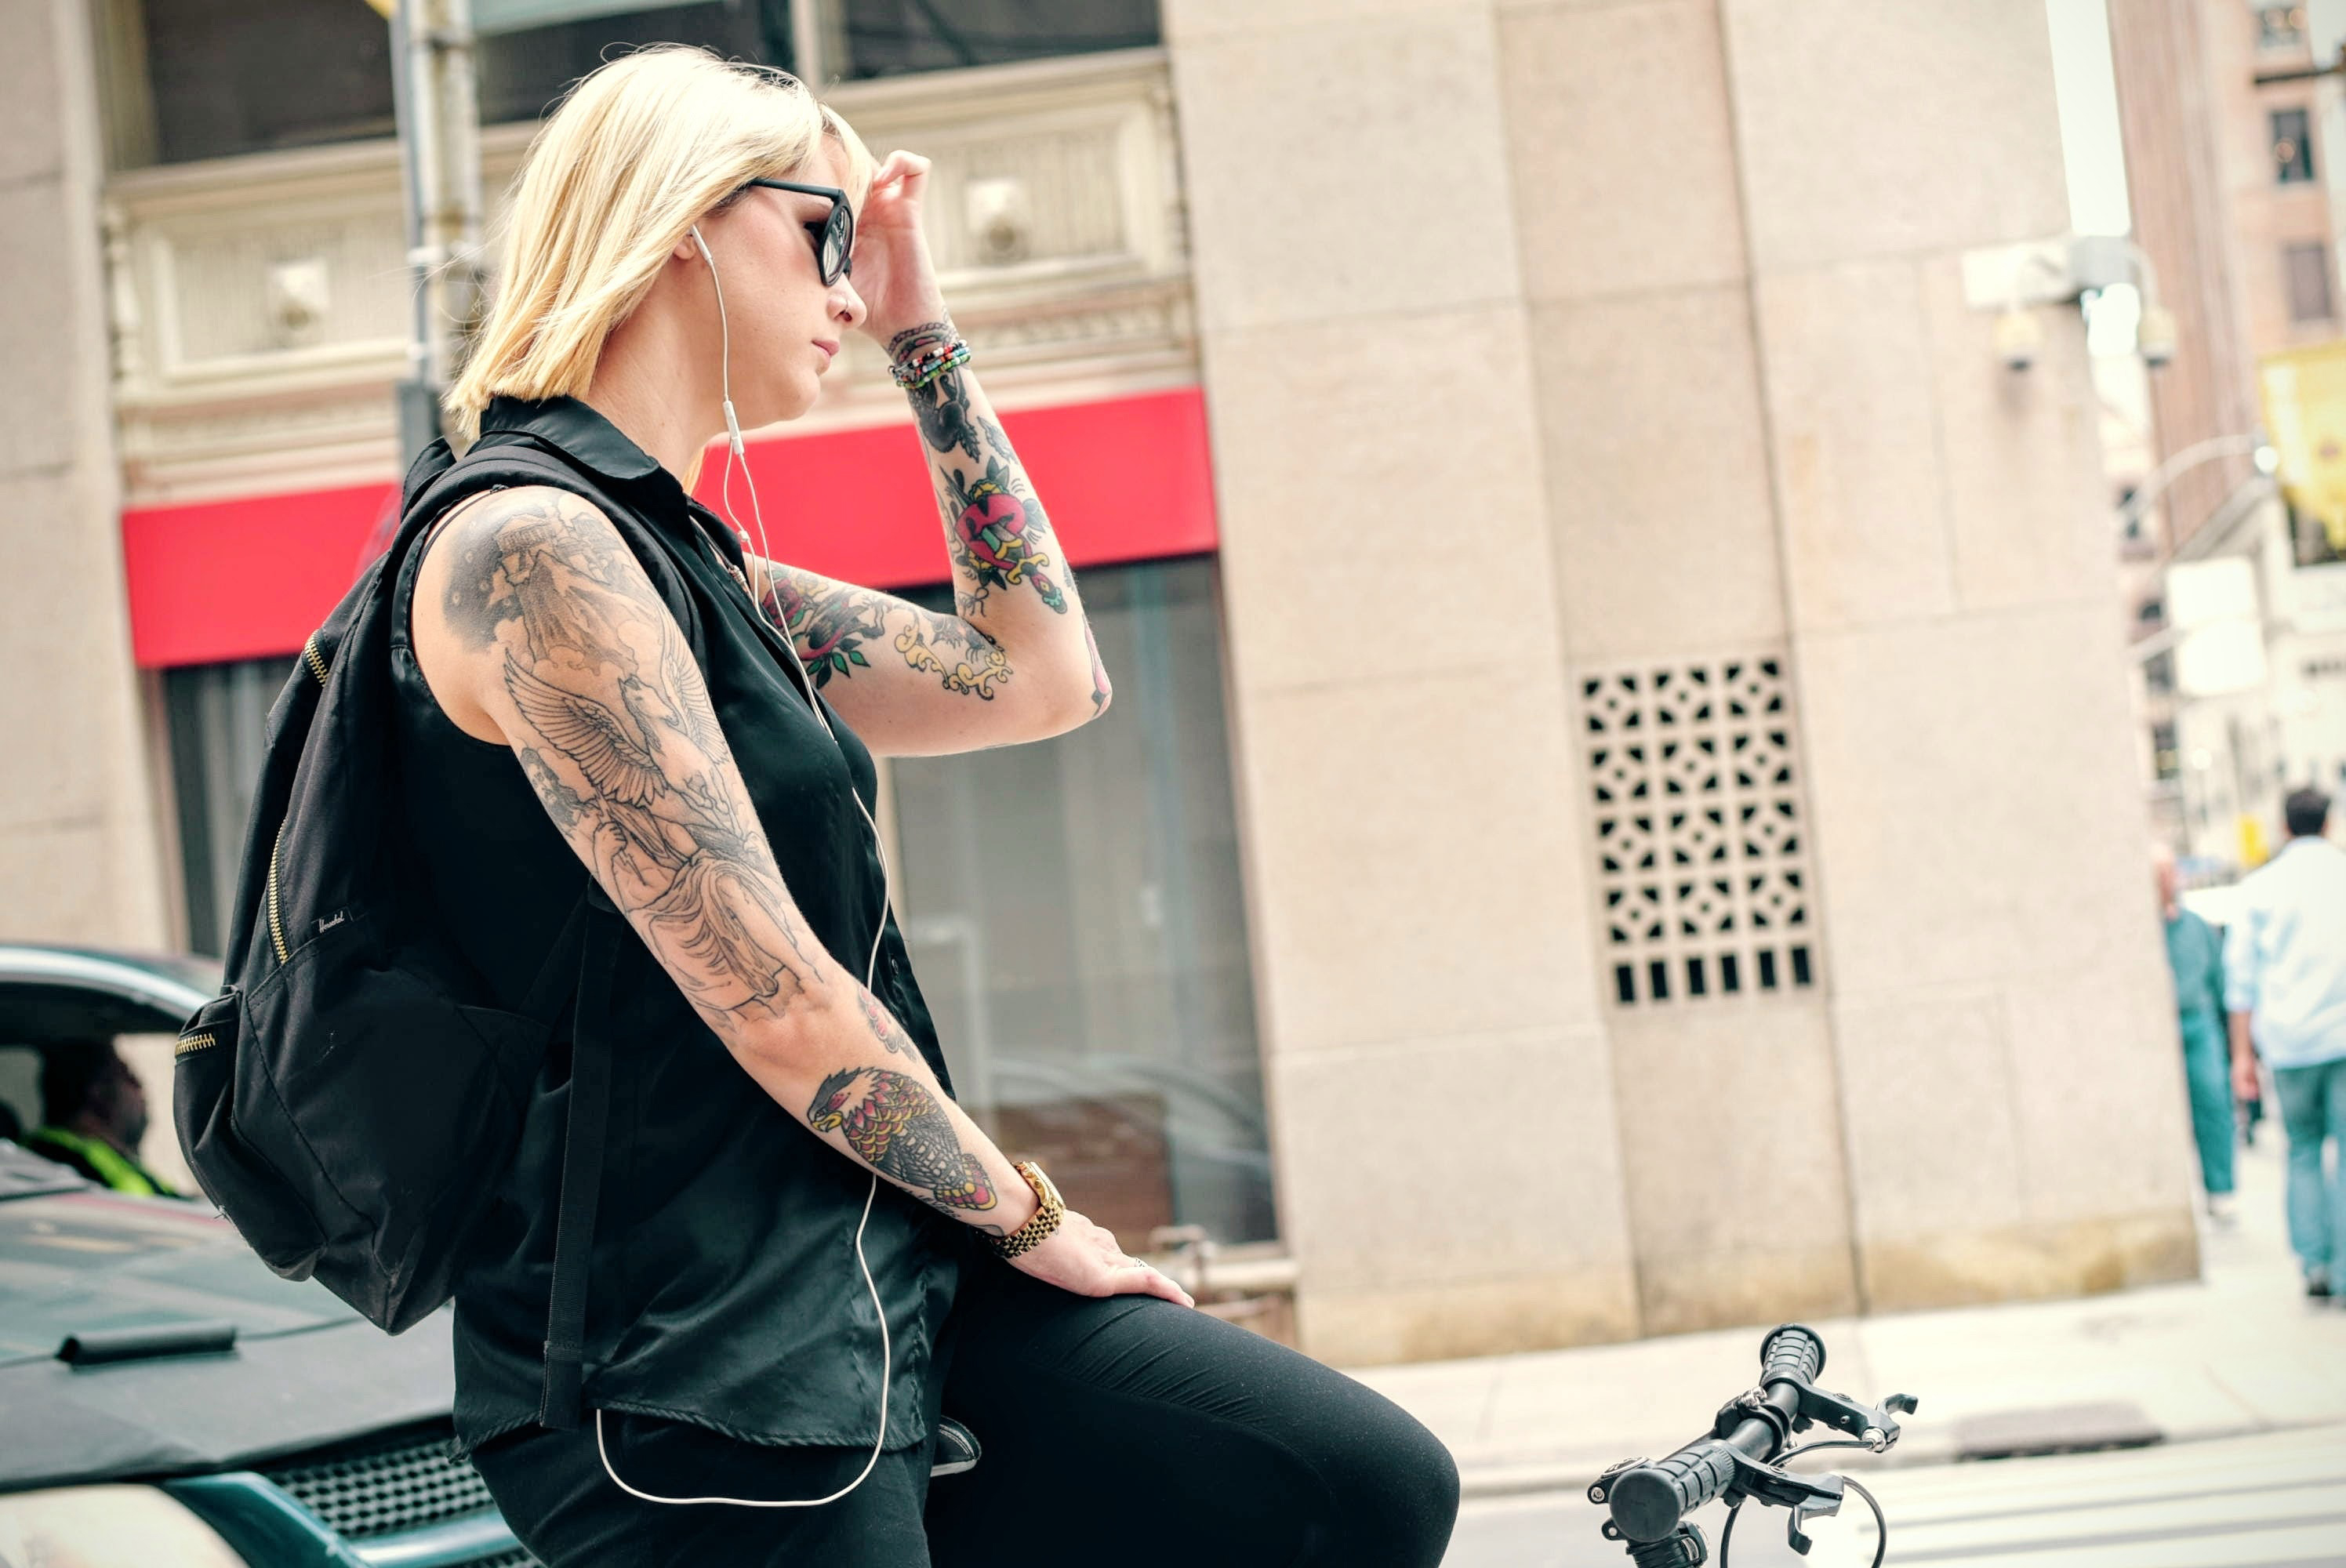 Cyclist,style,lady,people